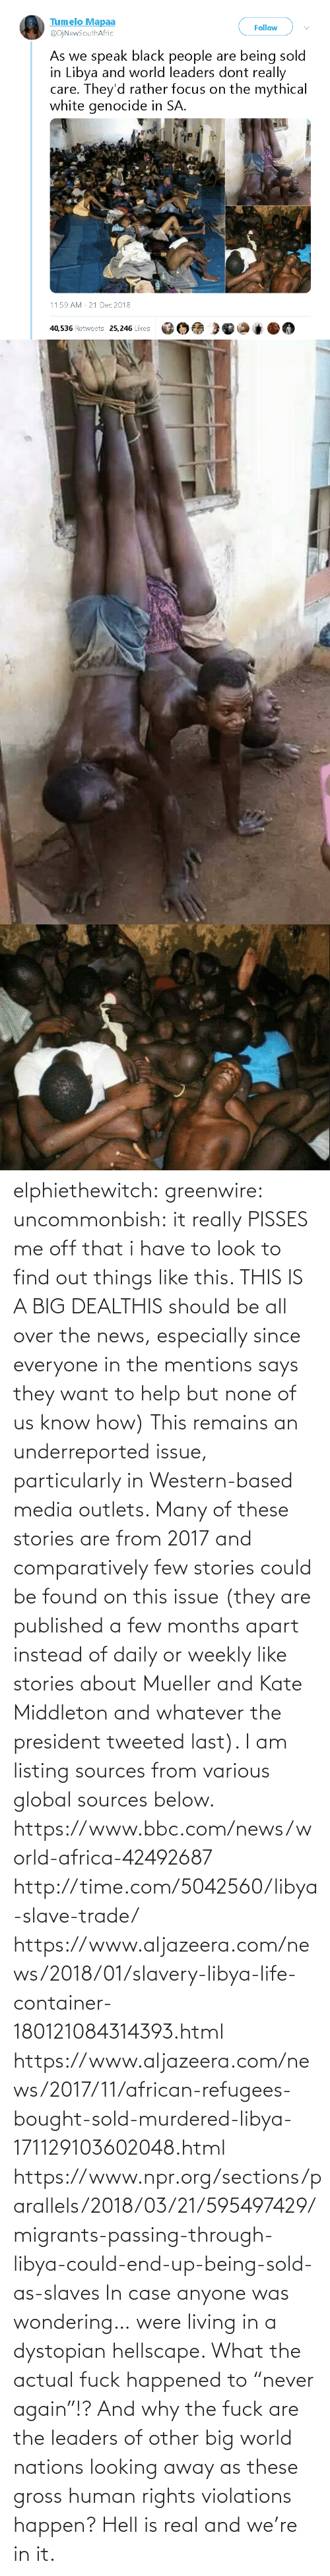 "Other: elphiethewitch: greenwire:  uncommonbish:  it really PISSES me off that i have to look to find out things like this. THIS IS A BIG DEALTHIS should be all over the news, especially since everyone in the mentions says they want to help but none of us know how)  This remains an underreported issue, particularly in Western-based media outlets. Many of these stories are from 2017 and comparatively few stories could be found on this issue (they are published a few months apart instead of daily or weekly like stories about Mueller and Kate Middleton and whatever the president tweeted last). I am listing sources from various global sources below.  https://www.bbc.com/news/world-africa-42492687 http://time.com/5042560/libya-slave-trade/ https://www.aljazeera.com/news/2018/01/slavery-libya-life-container-180121084314393.html https://www.aljazeera.com/news/2017/11/african-refugees-bought-sold-murdered-libya-171129103602048.html https://www.npr.org/sections/parallels/2018/03/21/595497429/migrants-passing-through-libya-could-end-up-being-sold-as-slaves   In case anyone was wondering… were living in a dystopian hellscape.  What the actual fuck happened to ""never again""!? And why the fuck are the leaders of other big world nations looking away as these gross human rights violations happen?  Hell is real and we're in it."